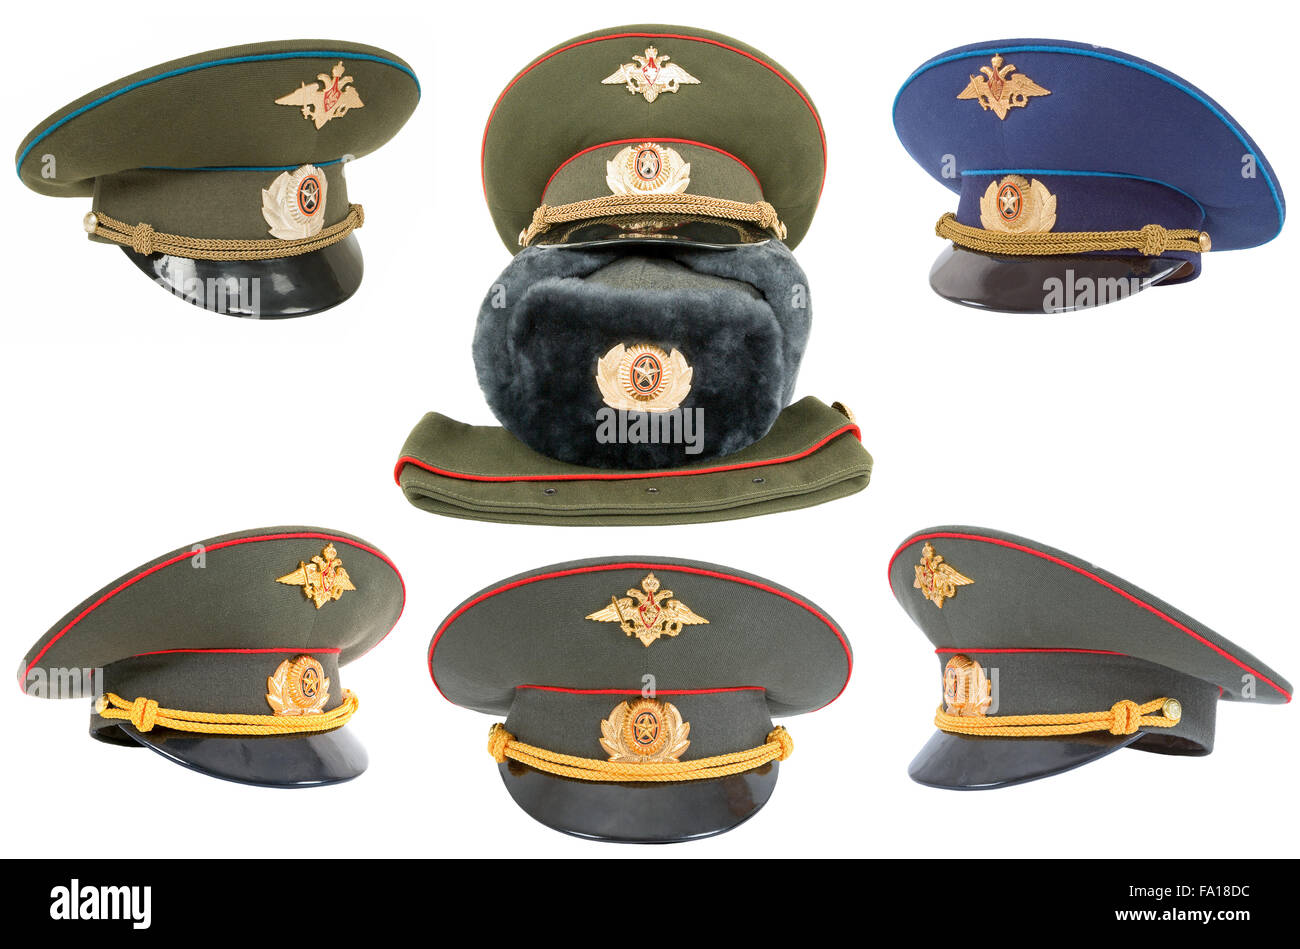 54fae96ef6a6b Russian Caps Stock Photos & Russian Caps Stock Images - Alamy